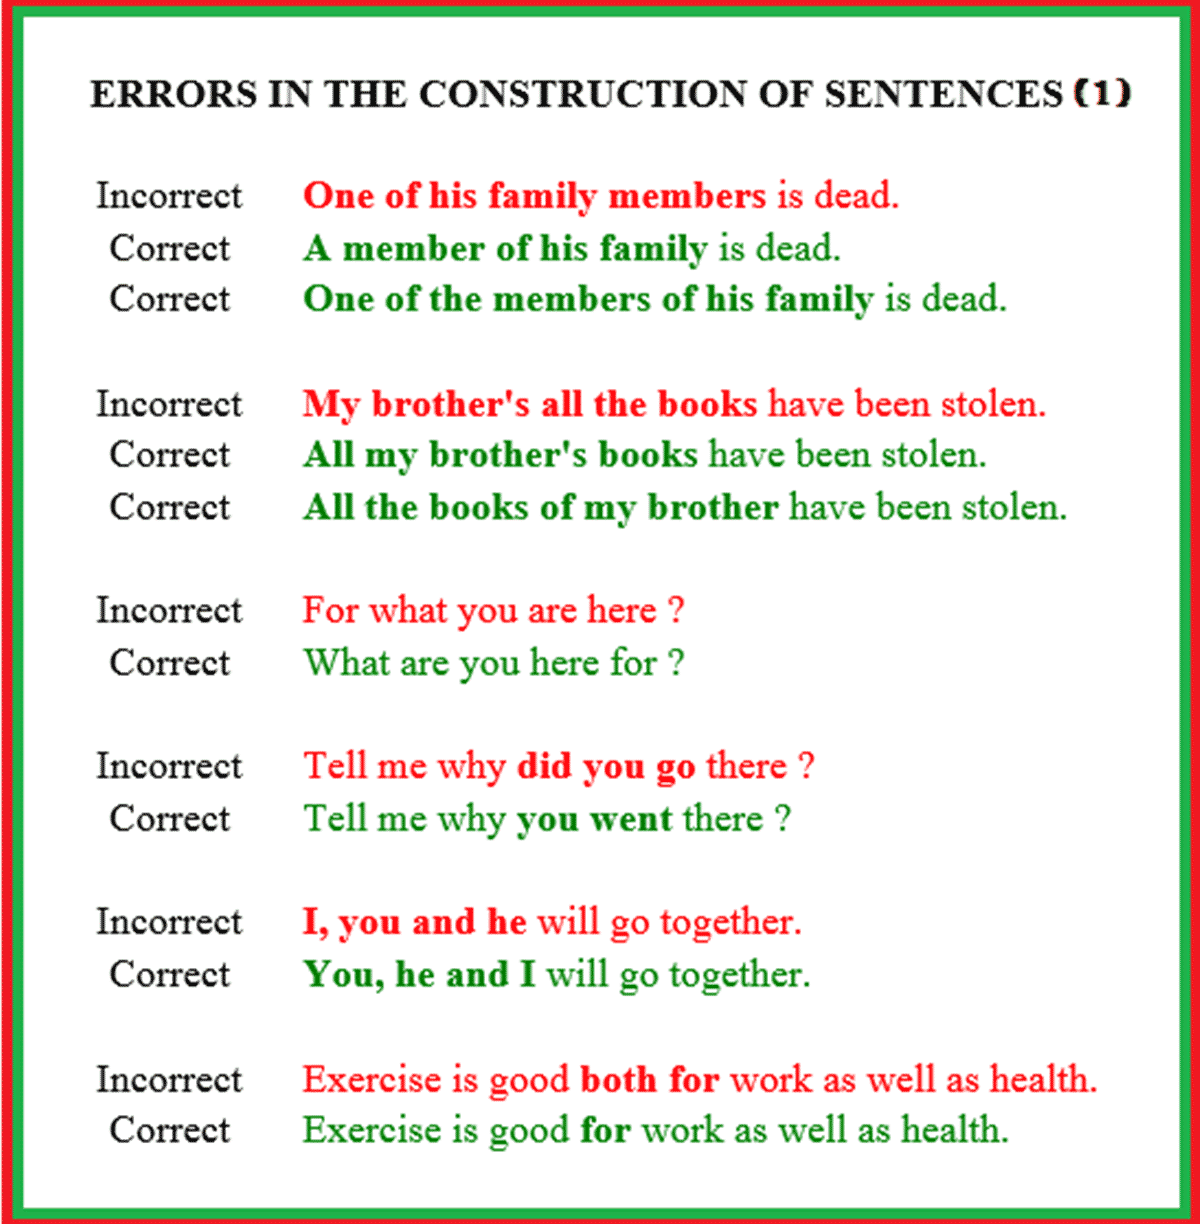 Errors in the Construction of Sentences